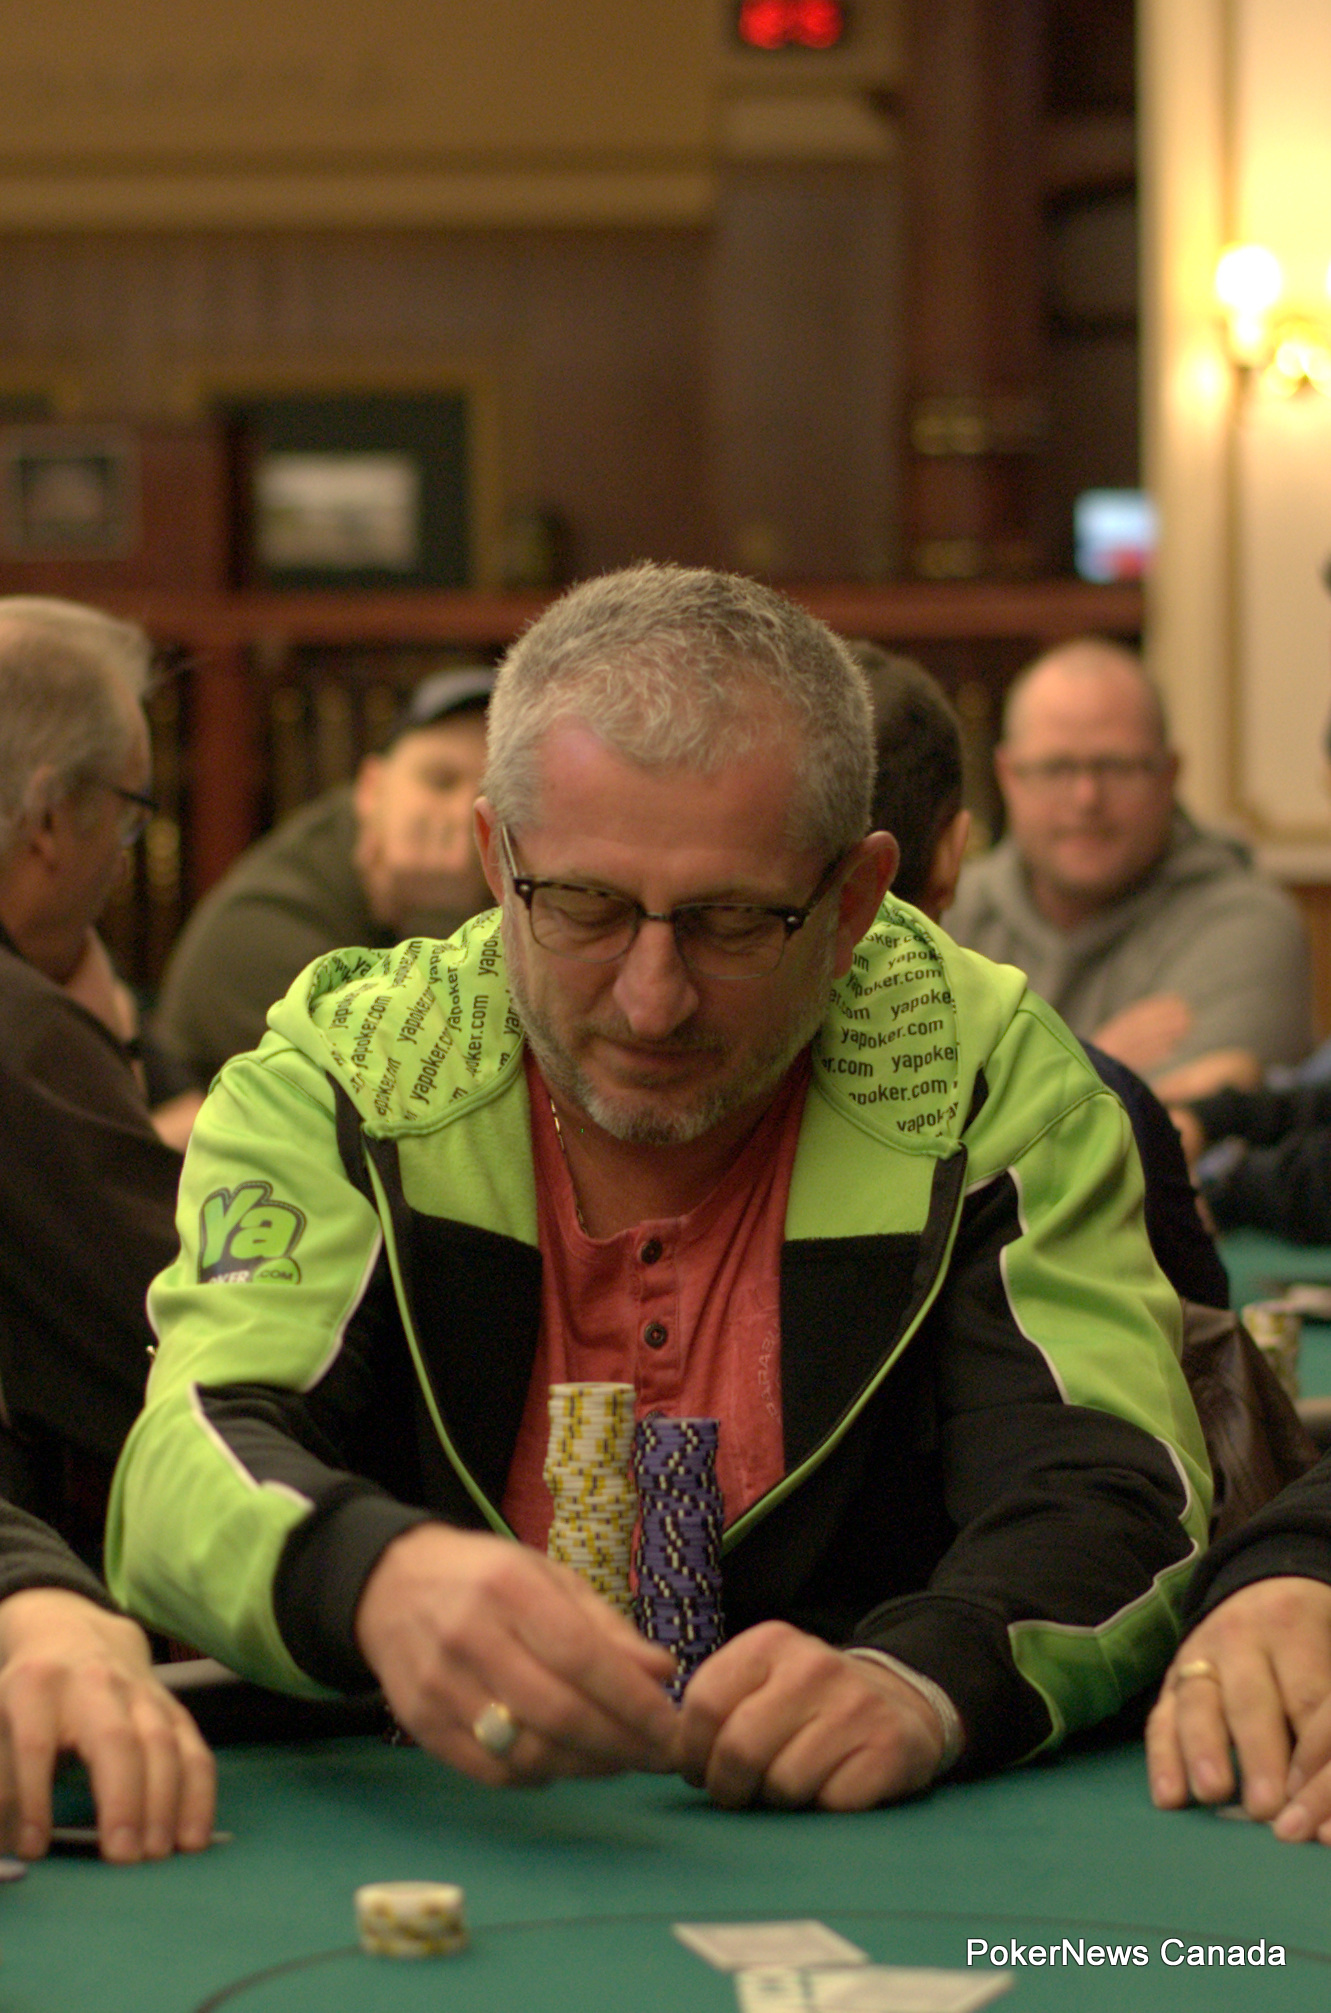 Ron Lauzon finished sixth in the PlayNow Poker Championship Main Event.